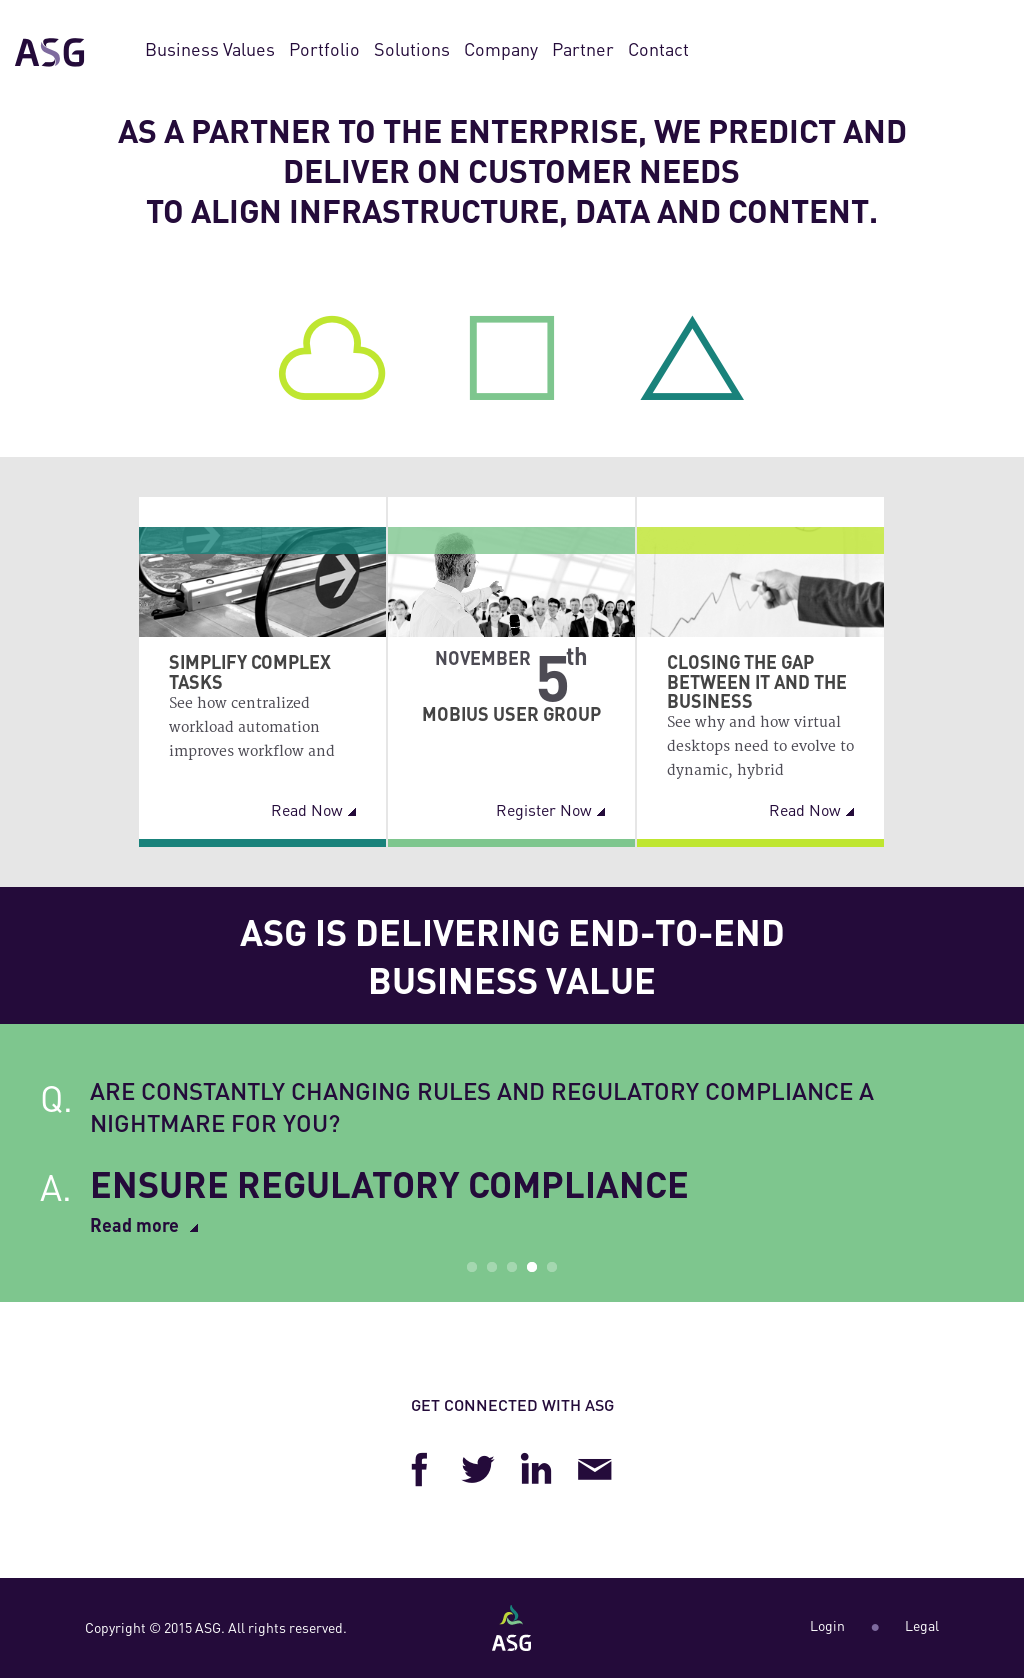 ASG Technologies Competitors, Revenue and Employees - Owler Company